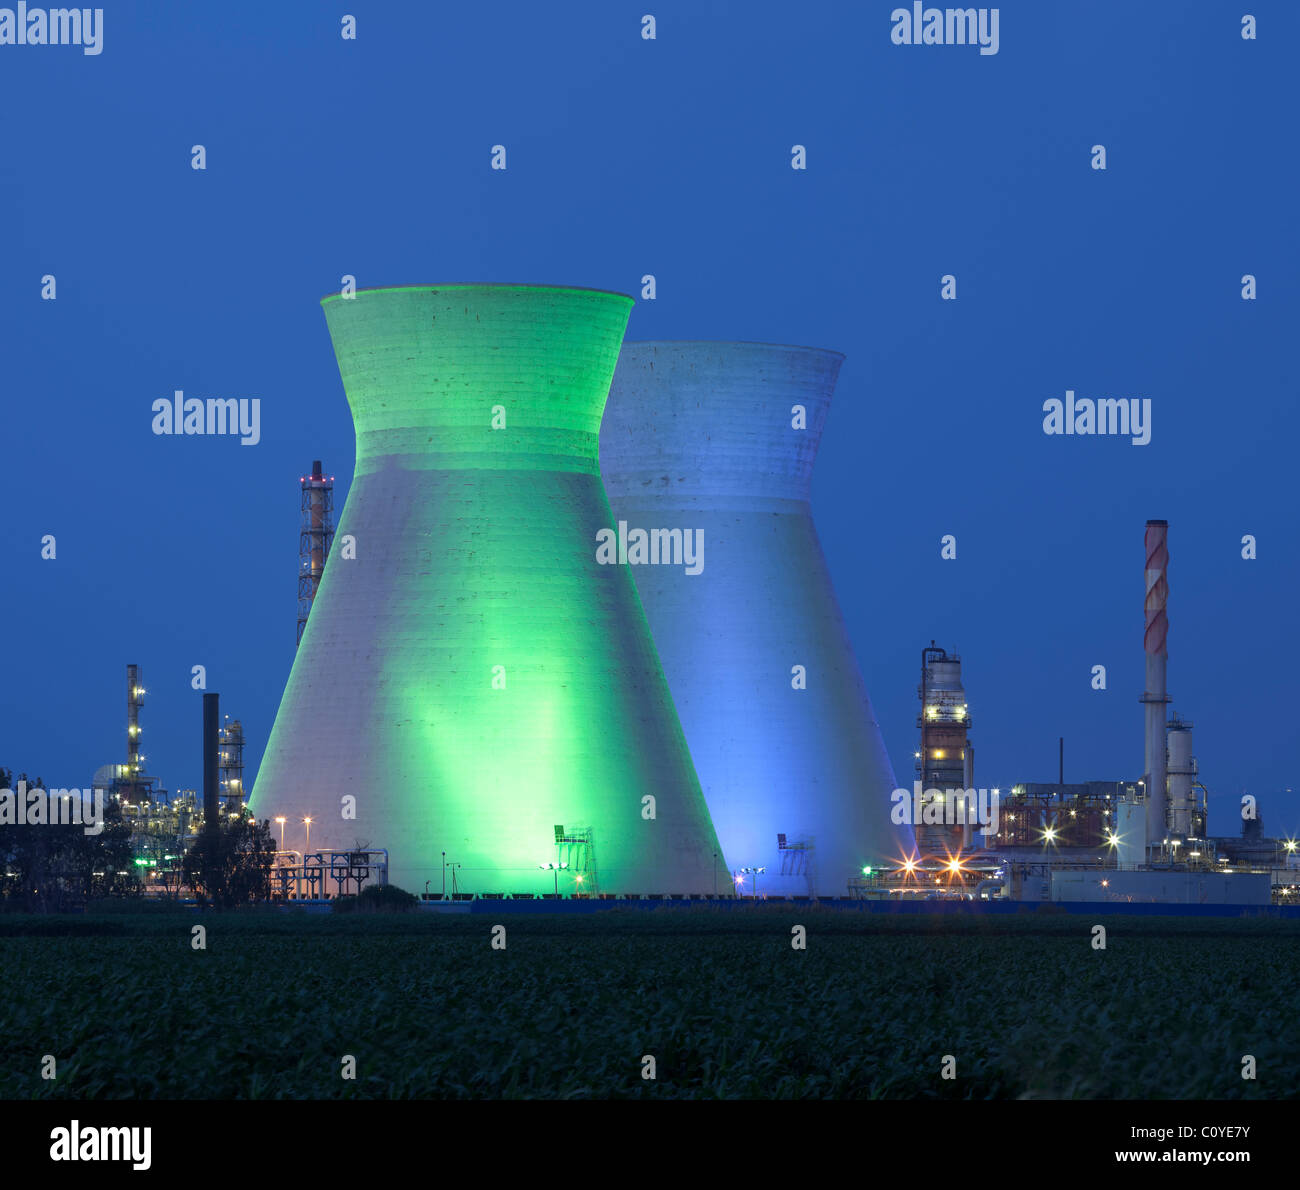 A coal power station and night blue sky - Stock Image